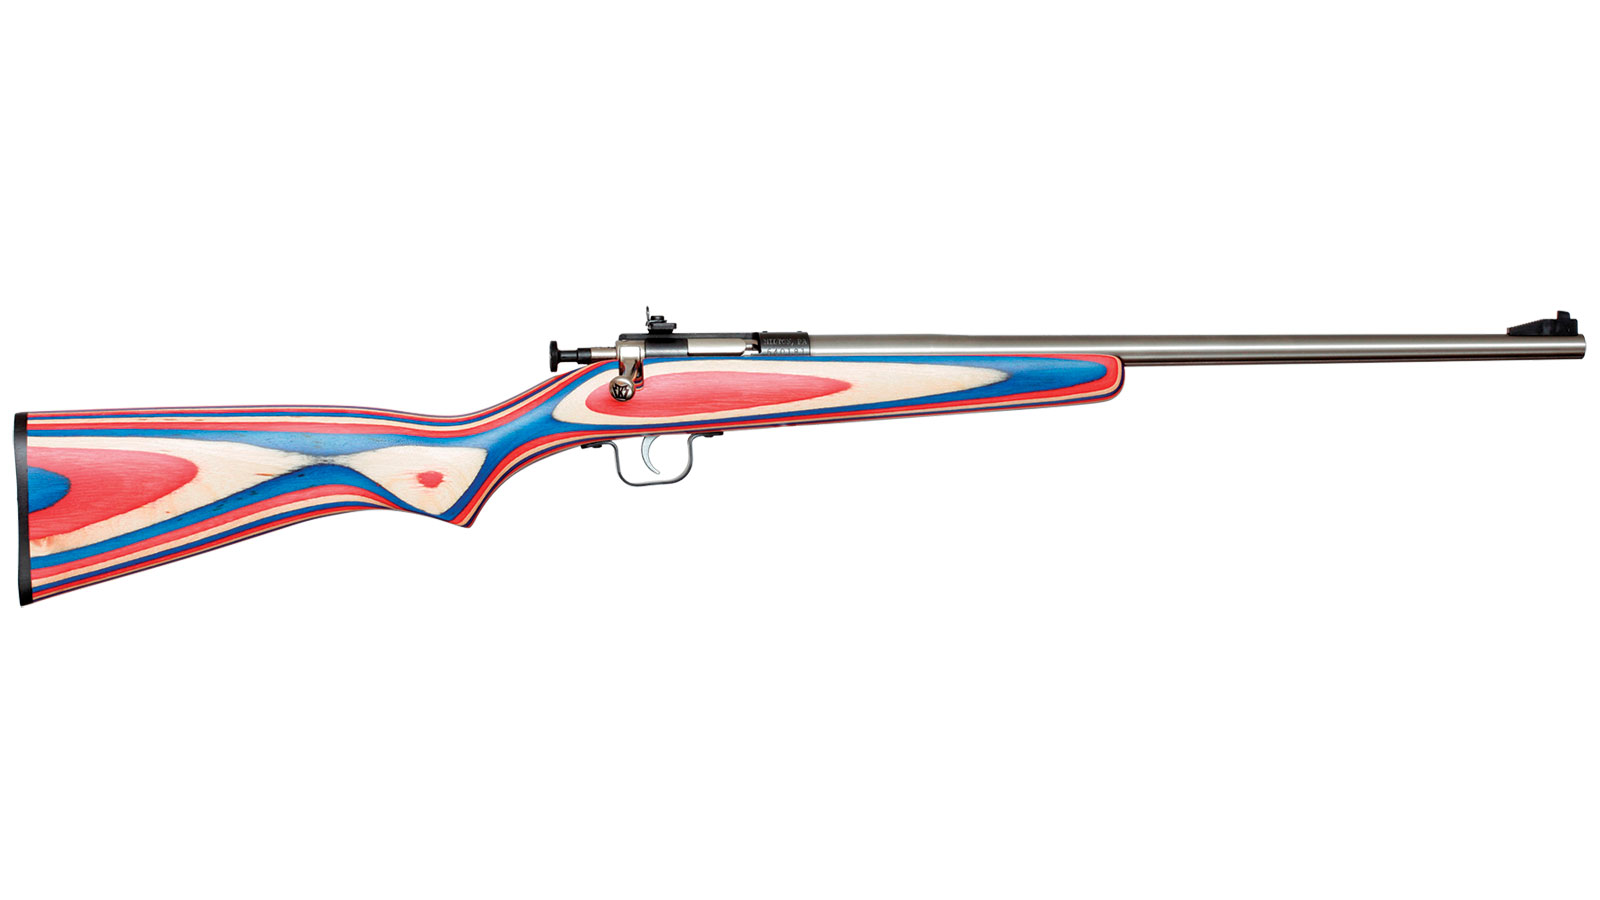 Keystone Crickett Red White Blue Wood Laminate Stock with Stainless Steel Action .22 LR 16 Inch 1 Rd